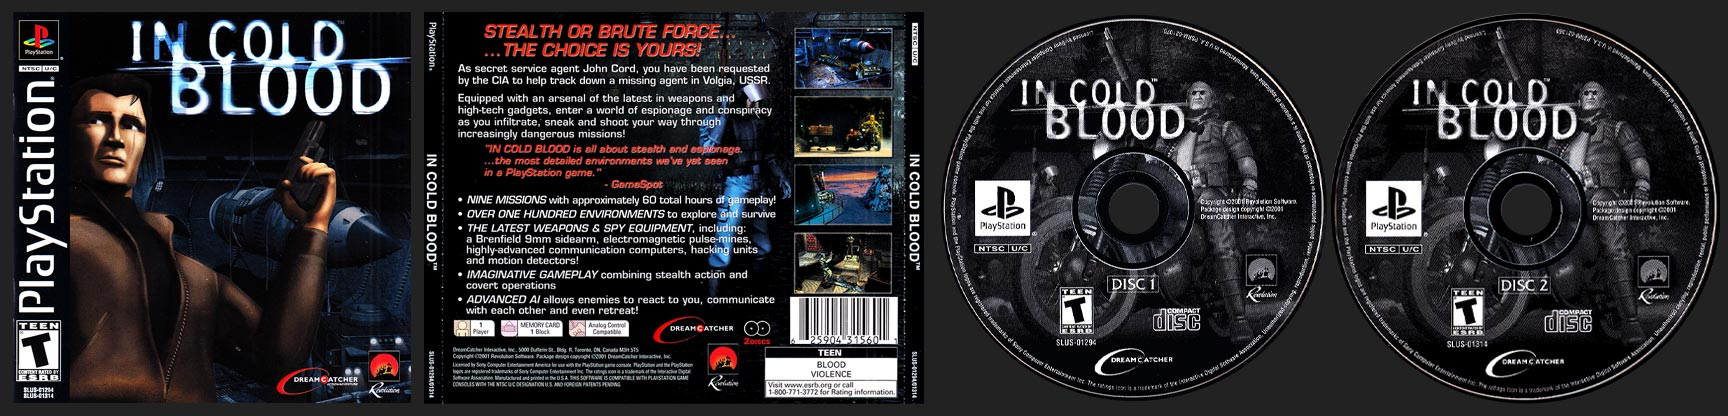 PSX PlayStation In Cold Blood Black Label Retail Release